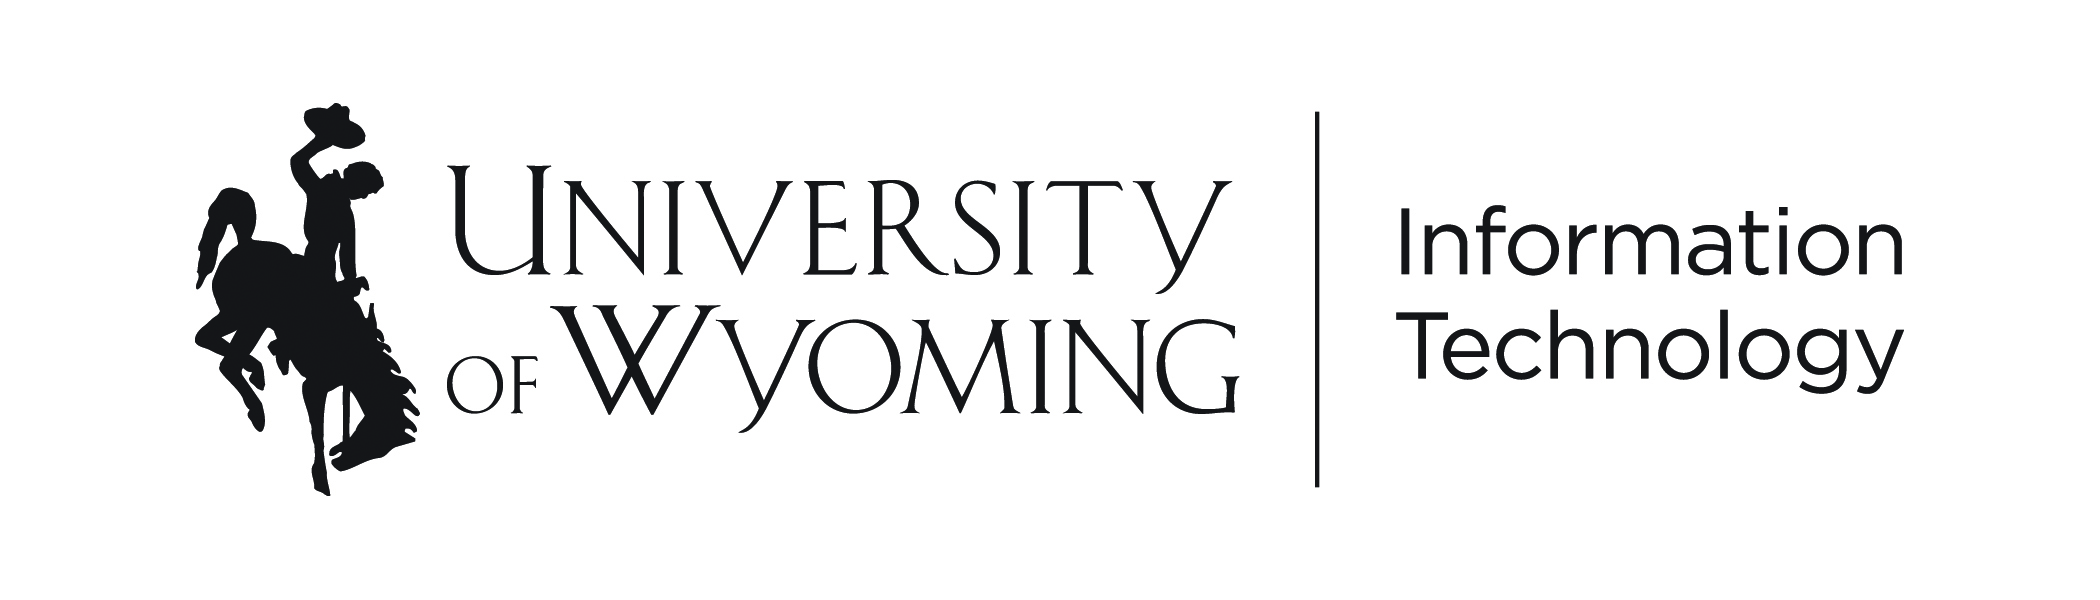 University of Wyoming Information Technology